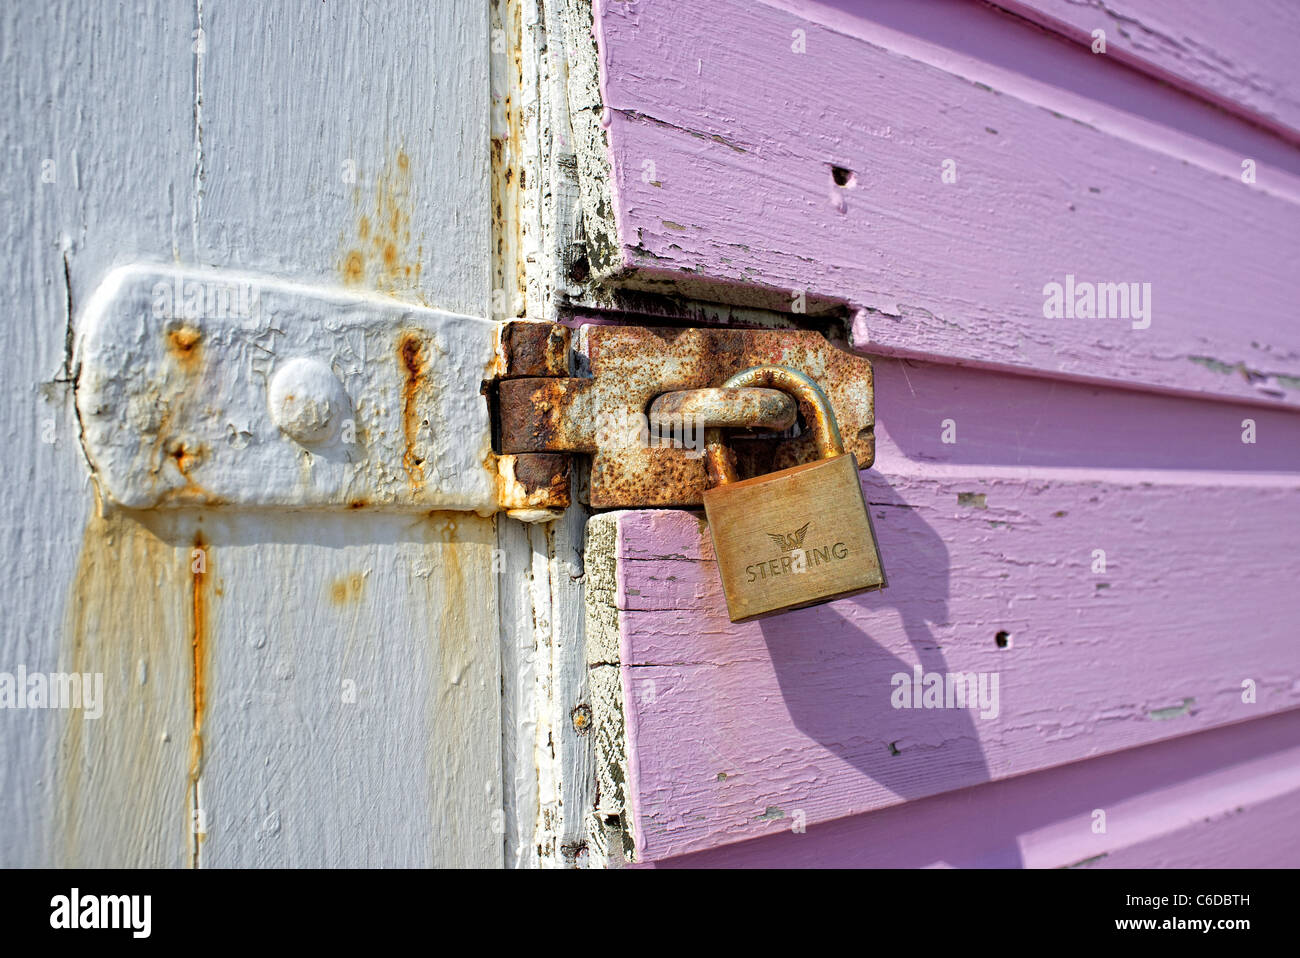 padlock on a painted wooden door - Stock Image